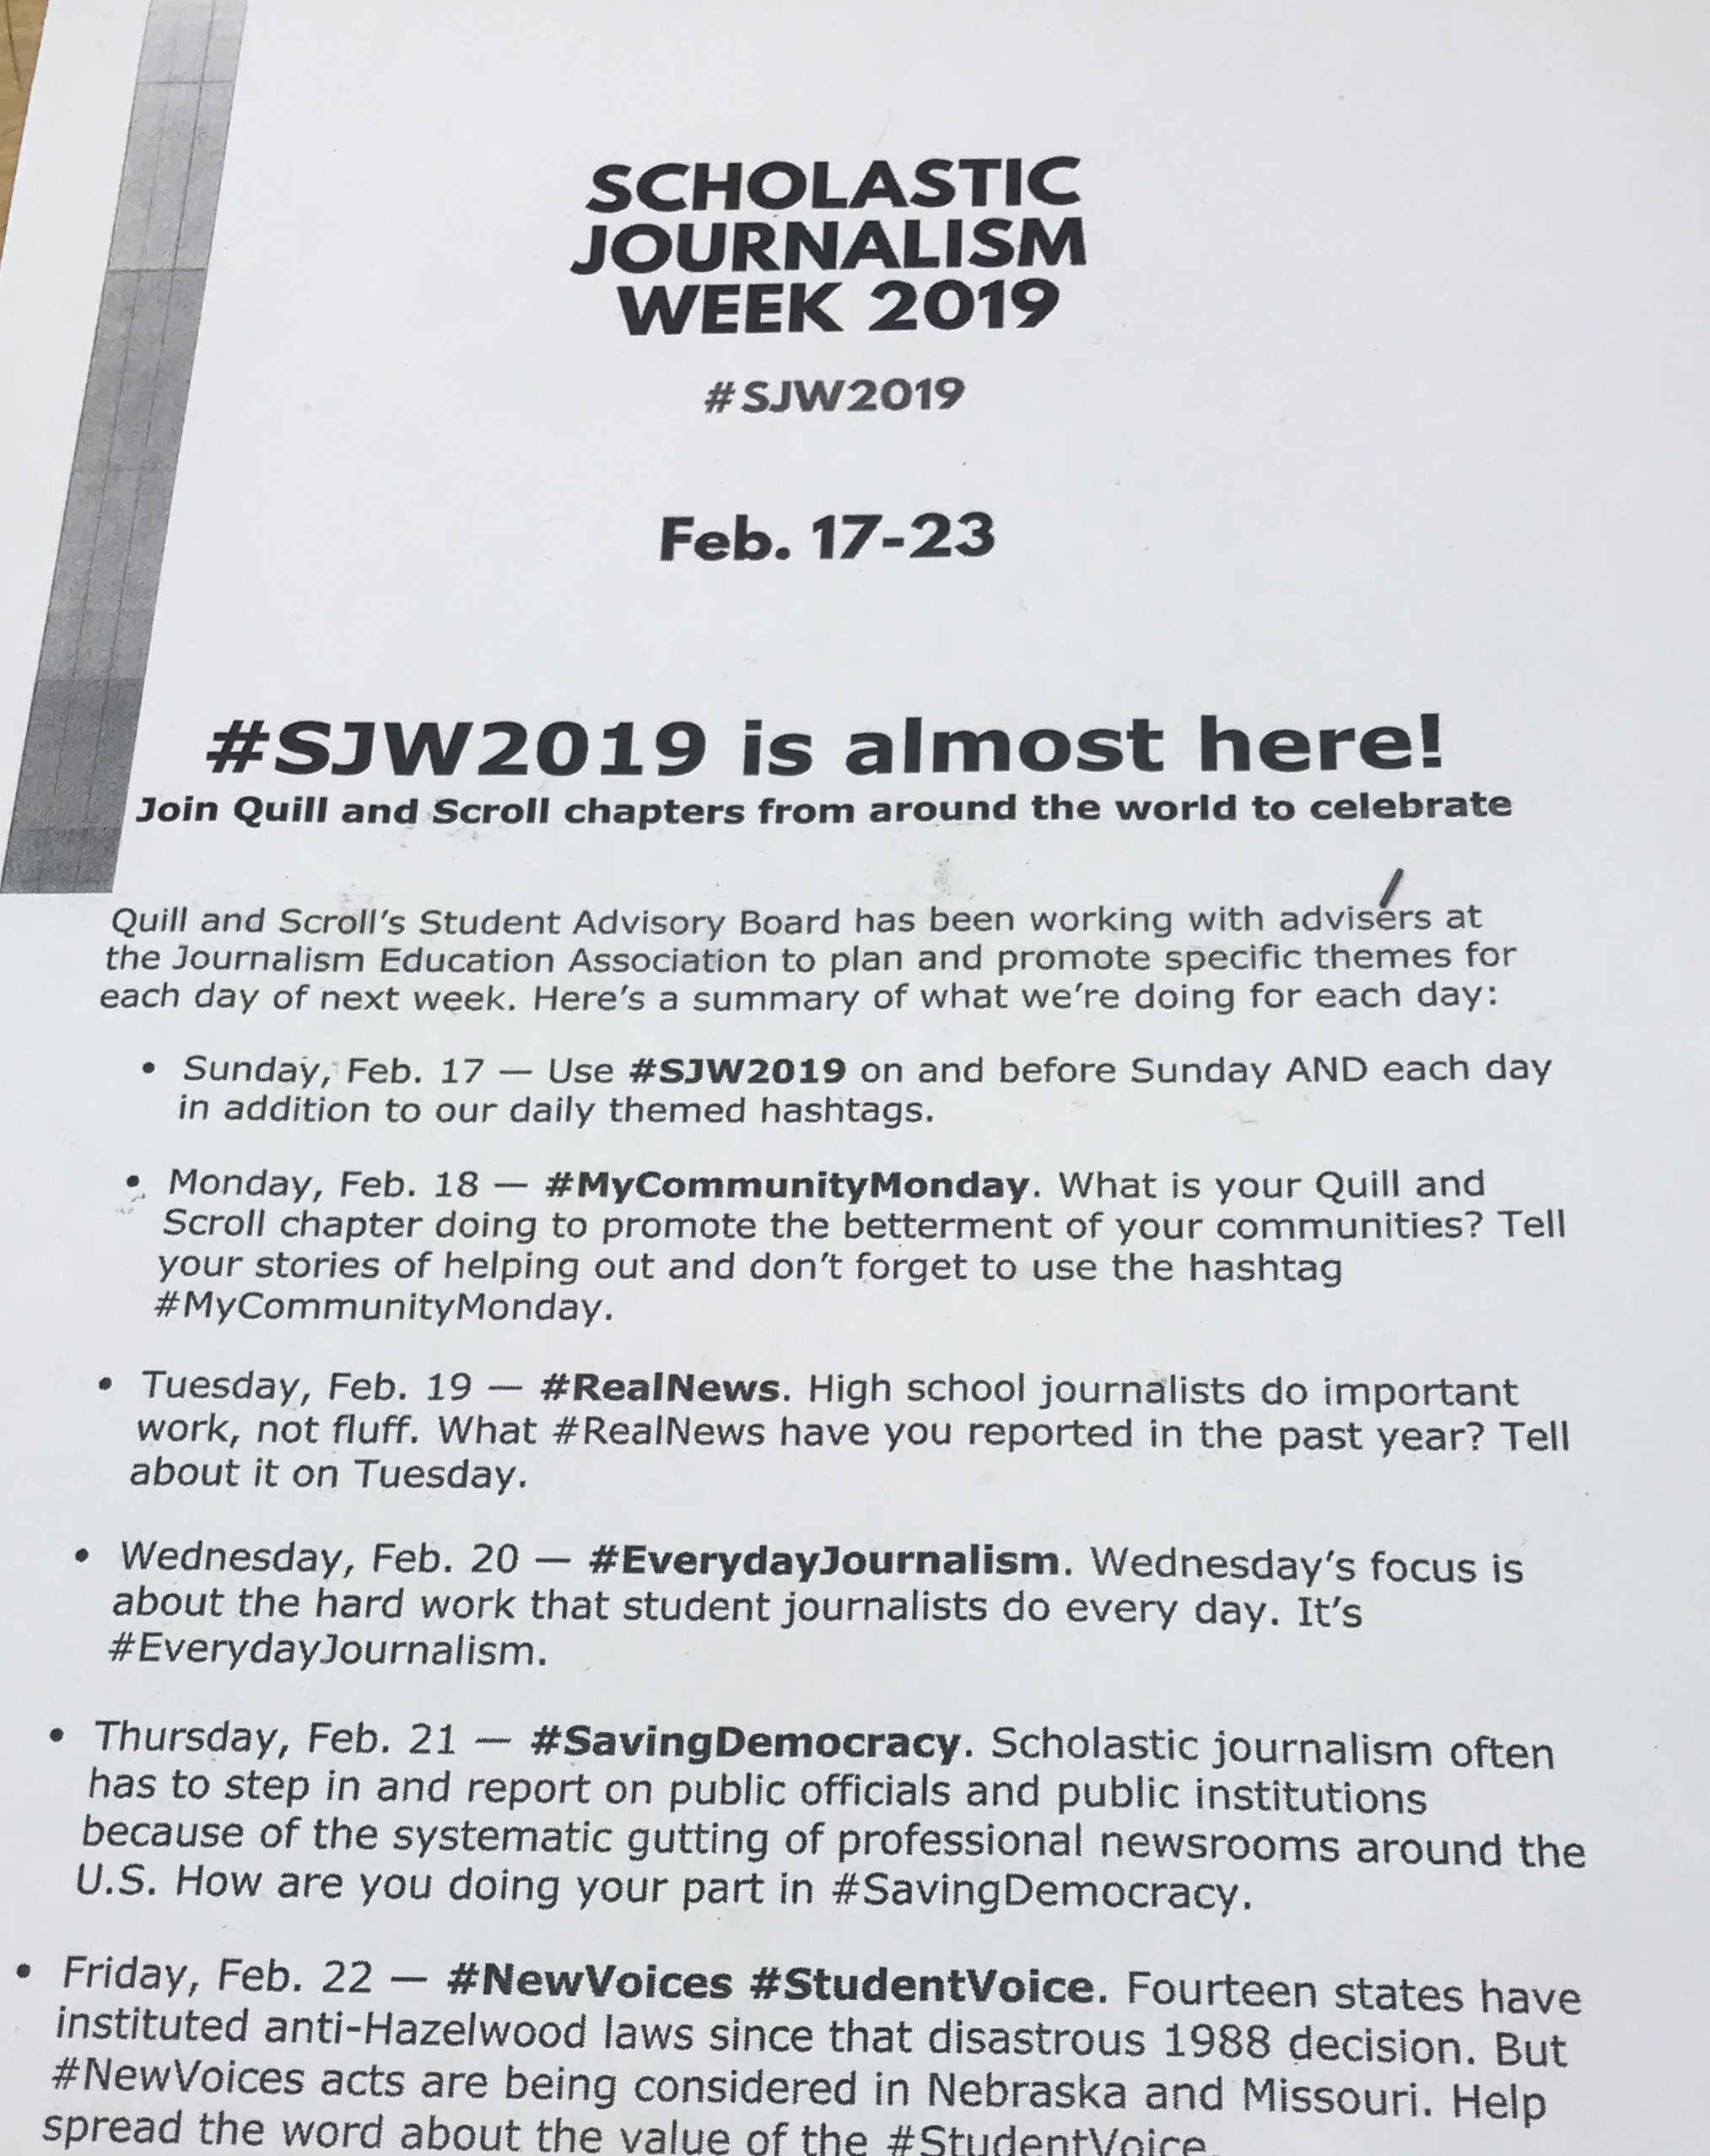 Welcome 2019 scholastic journalism week